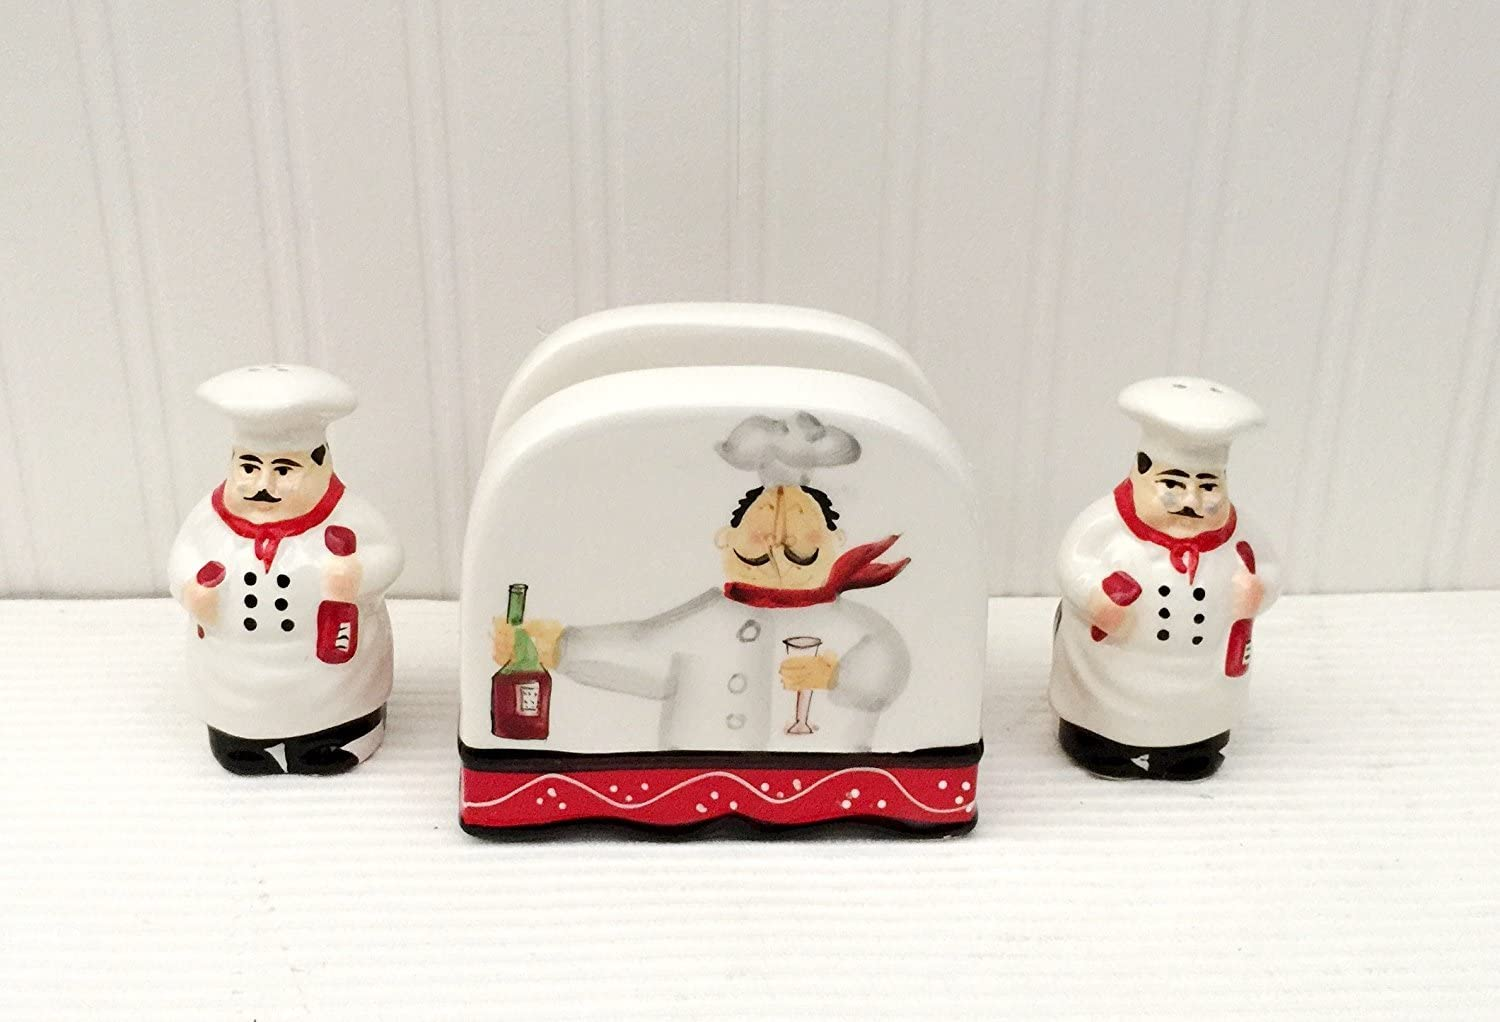 Tuscany Colorful Plump Bistro Chef Hand Painted Napkin, Salt & Pepper Shakers Set of 3pcs, 89128 by ACK